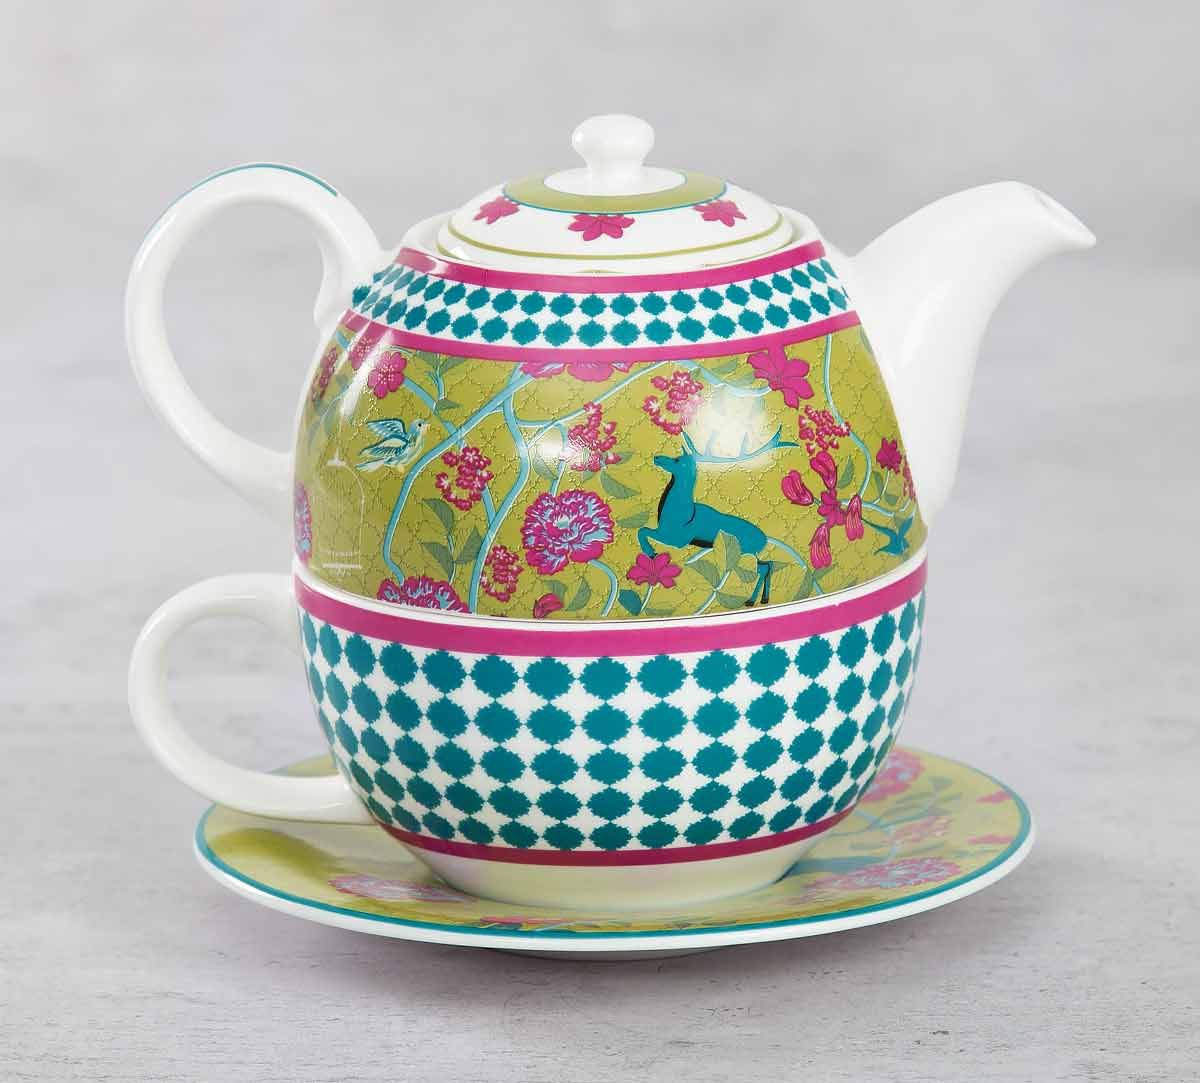 Buy elegant teapot sets online on India Circus